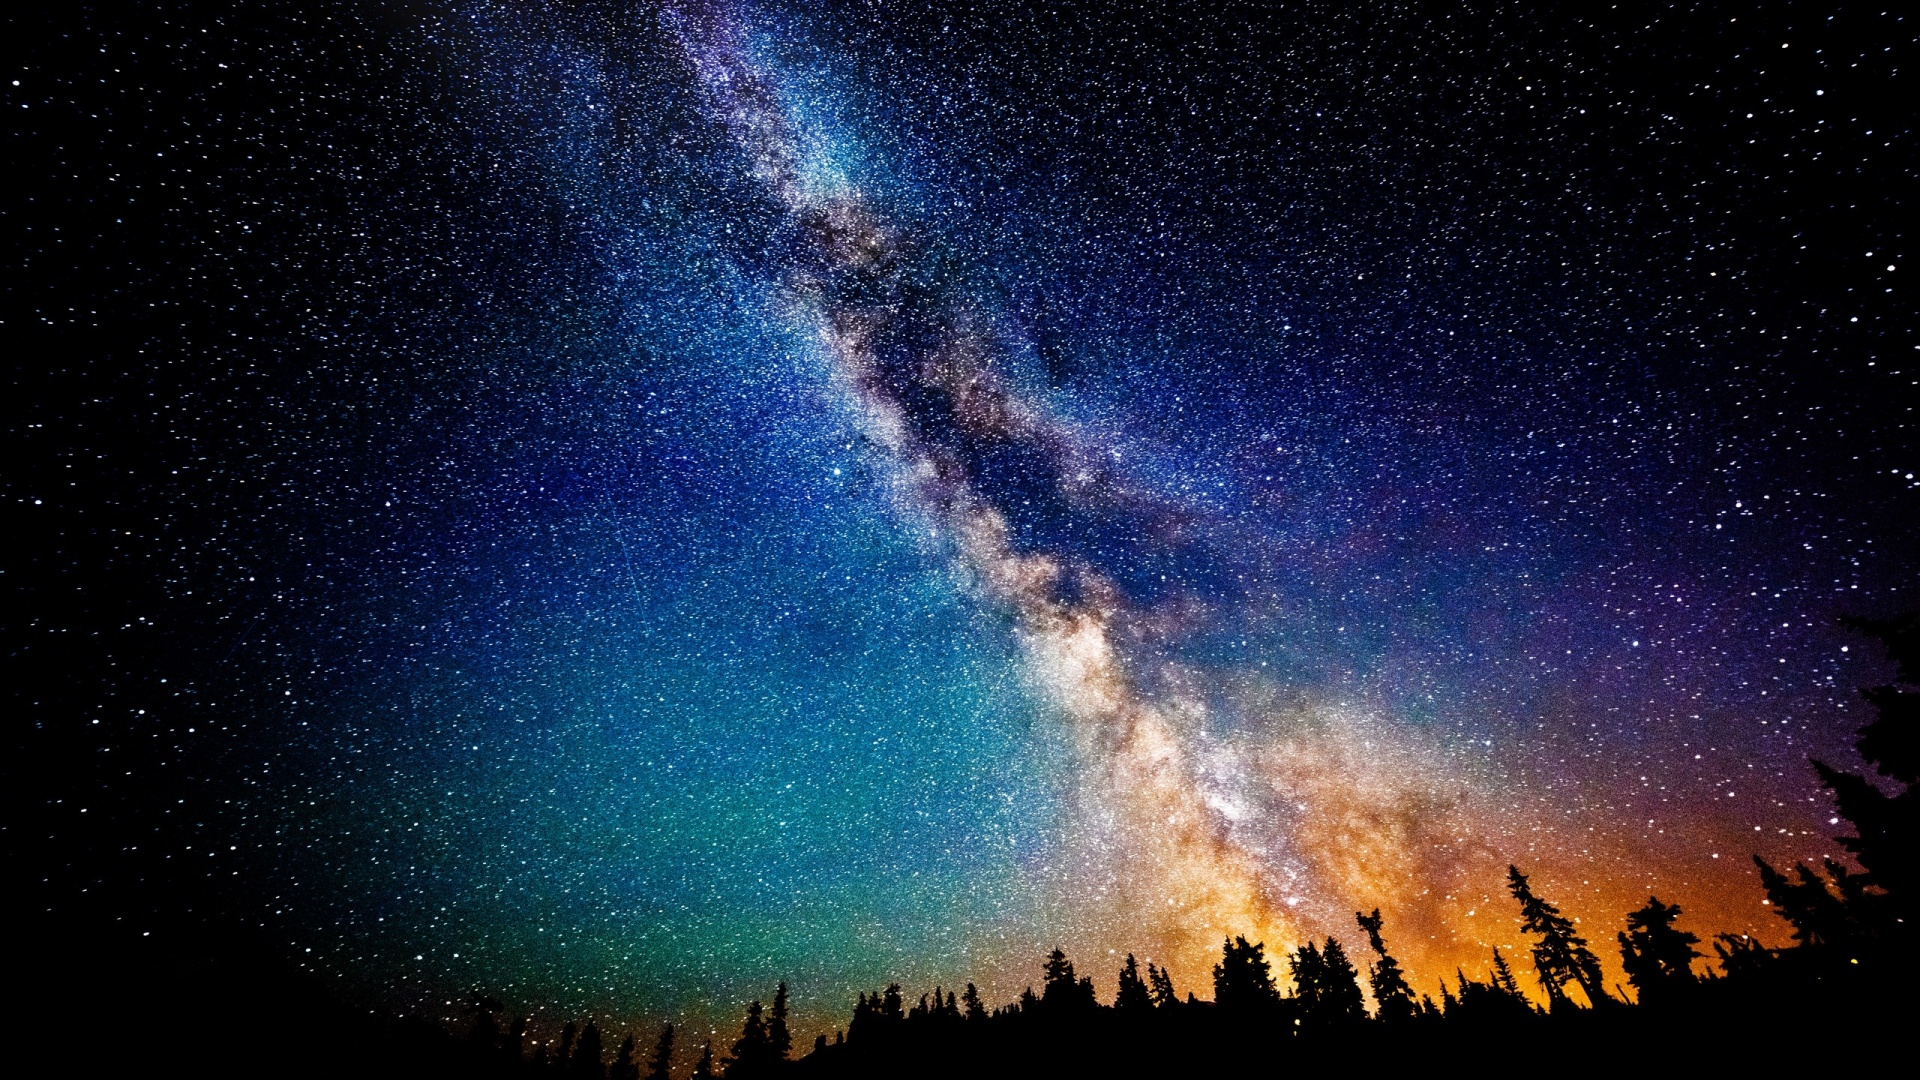 1920x1080 The Milky Way at Night